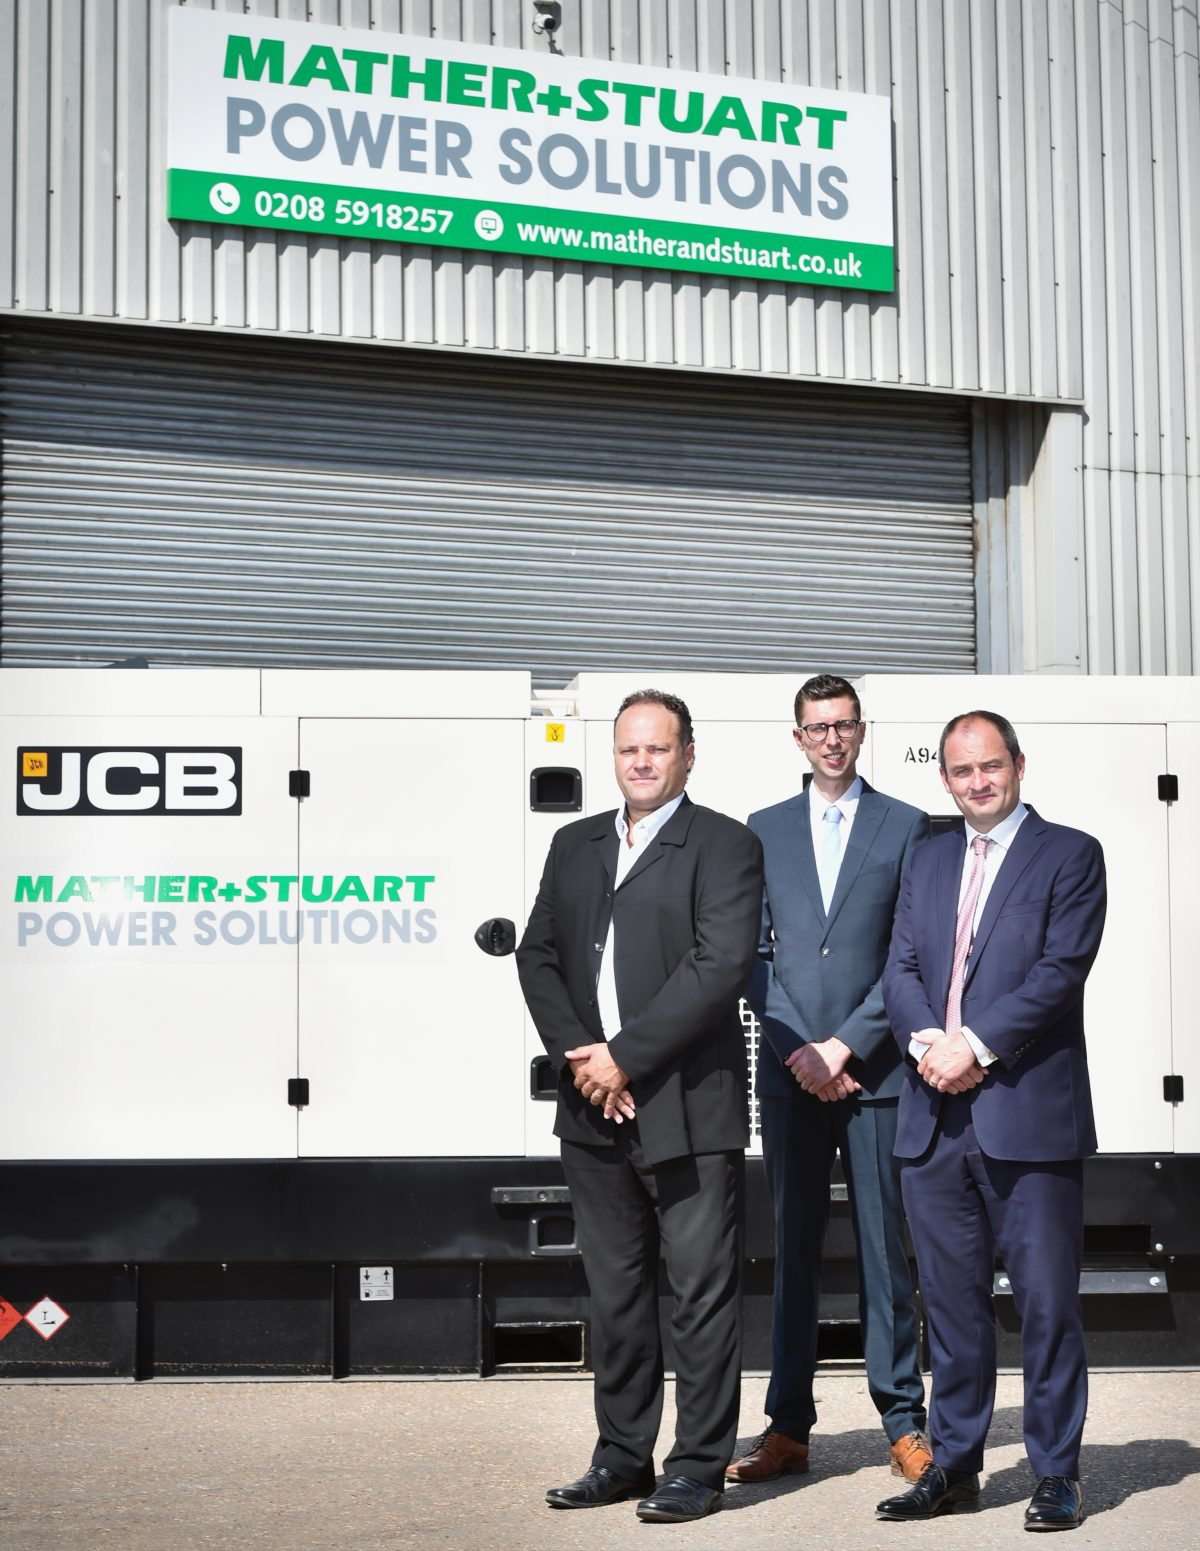 Mather + Stuart expand with £4.5 million JCB Generator order